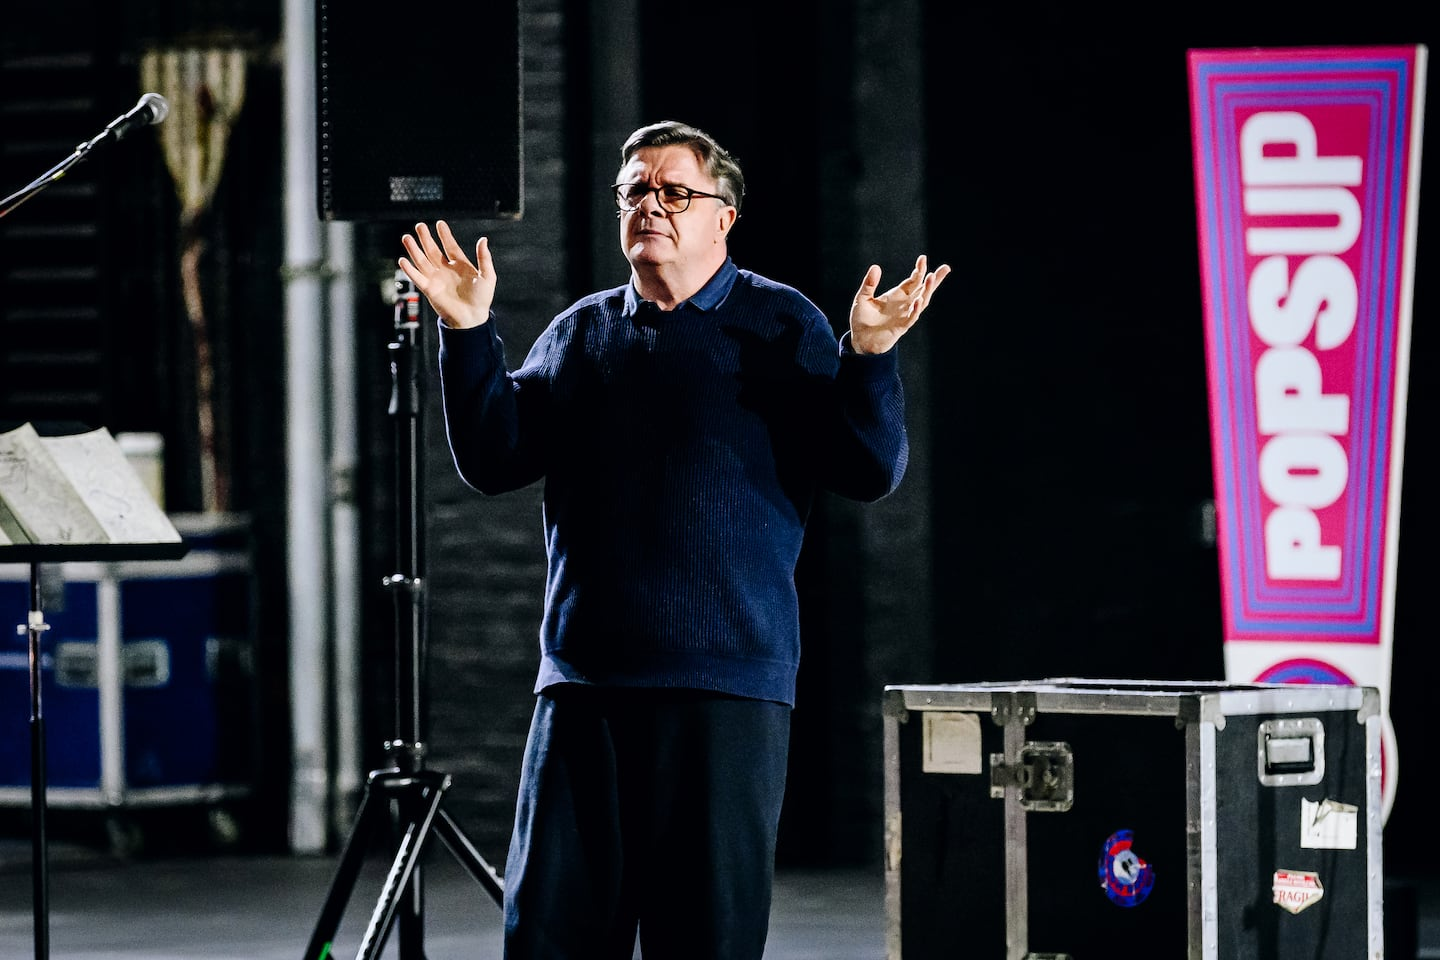 For the first time in almost 13 months, a Broadway theater features a live event ? with Nathan Lane and Savion Glover